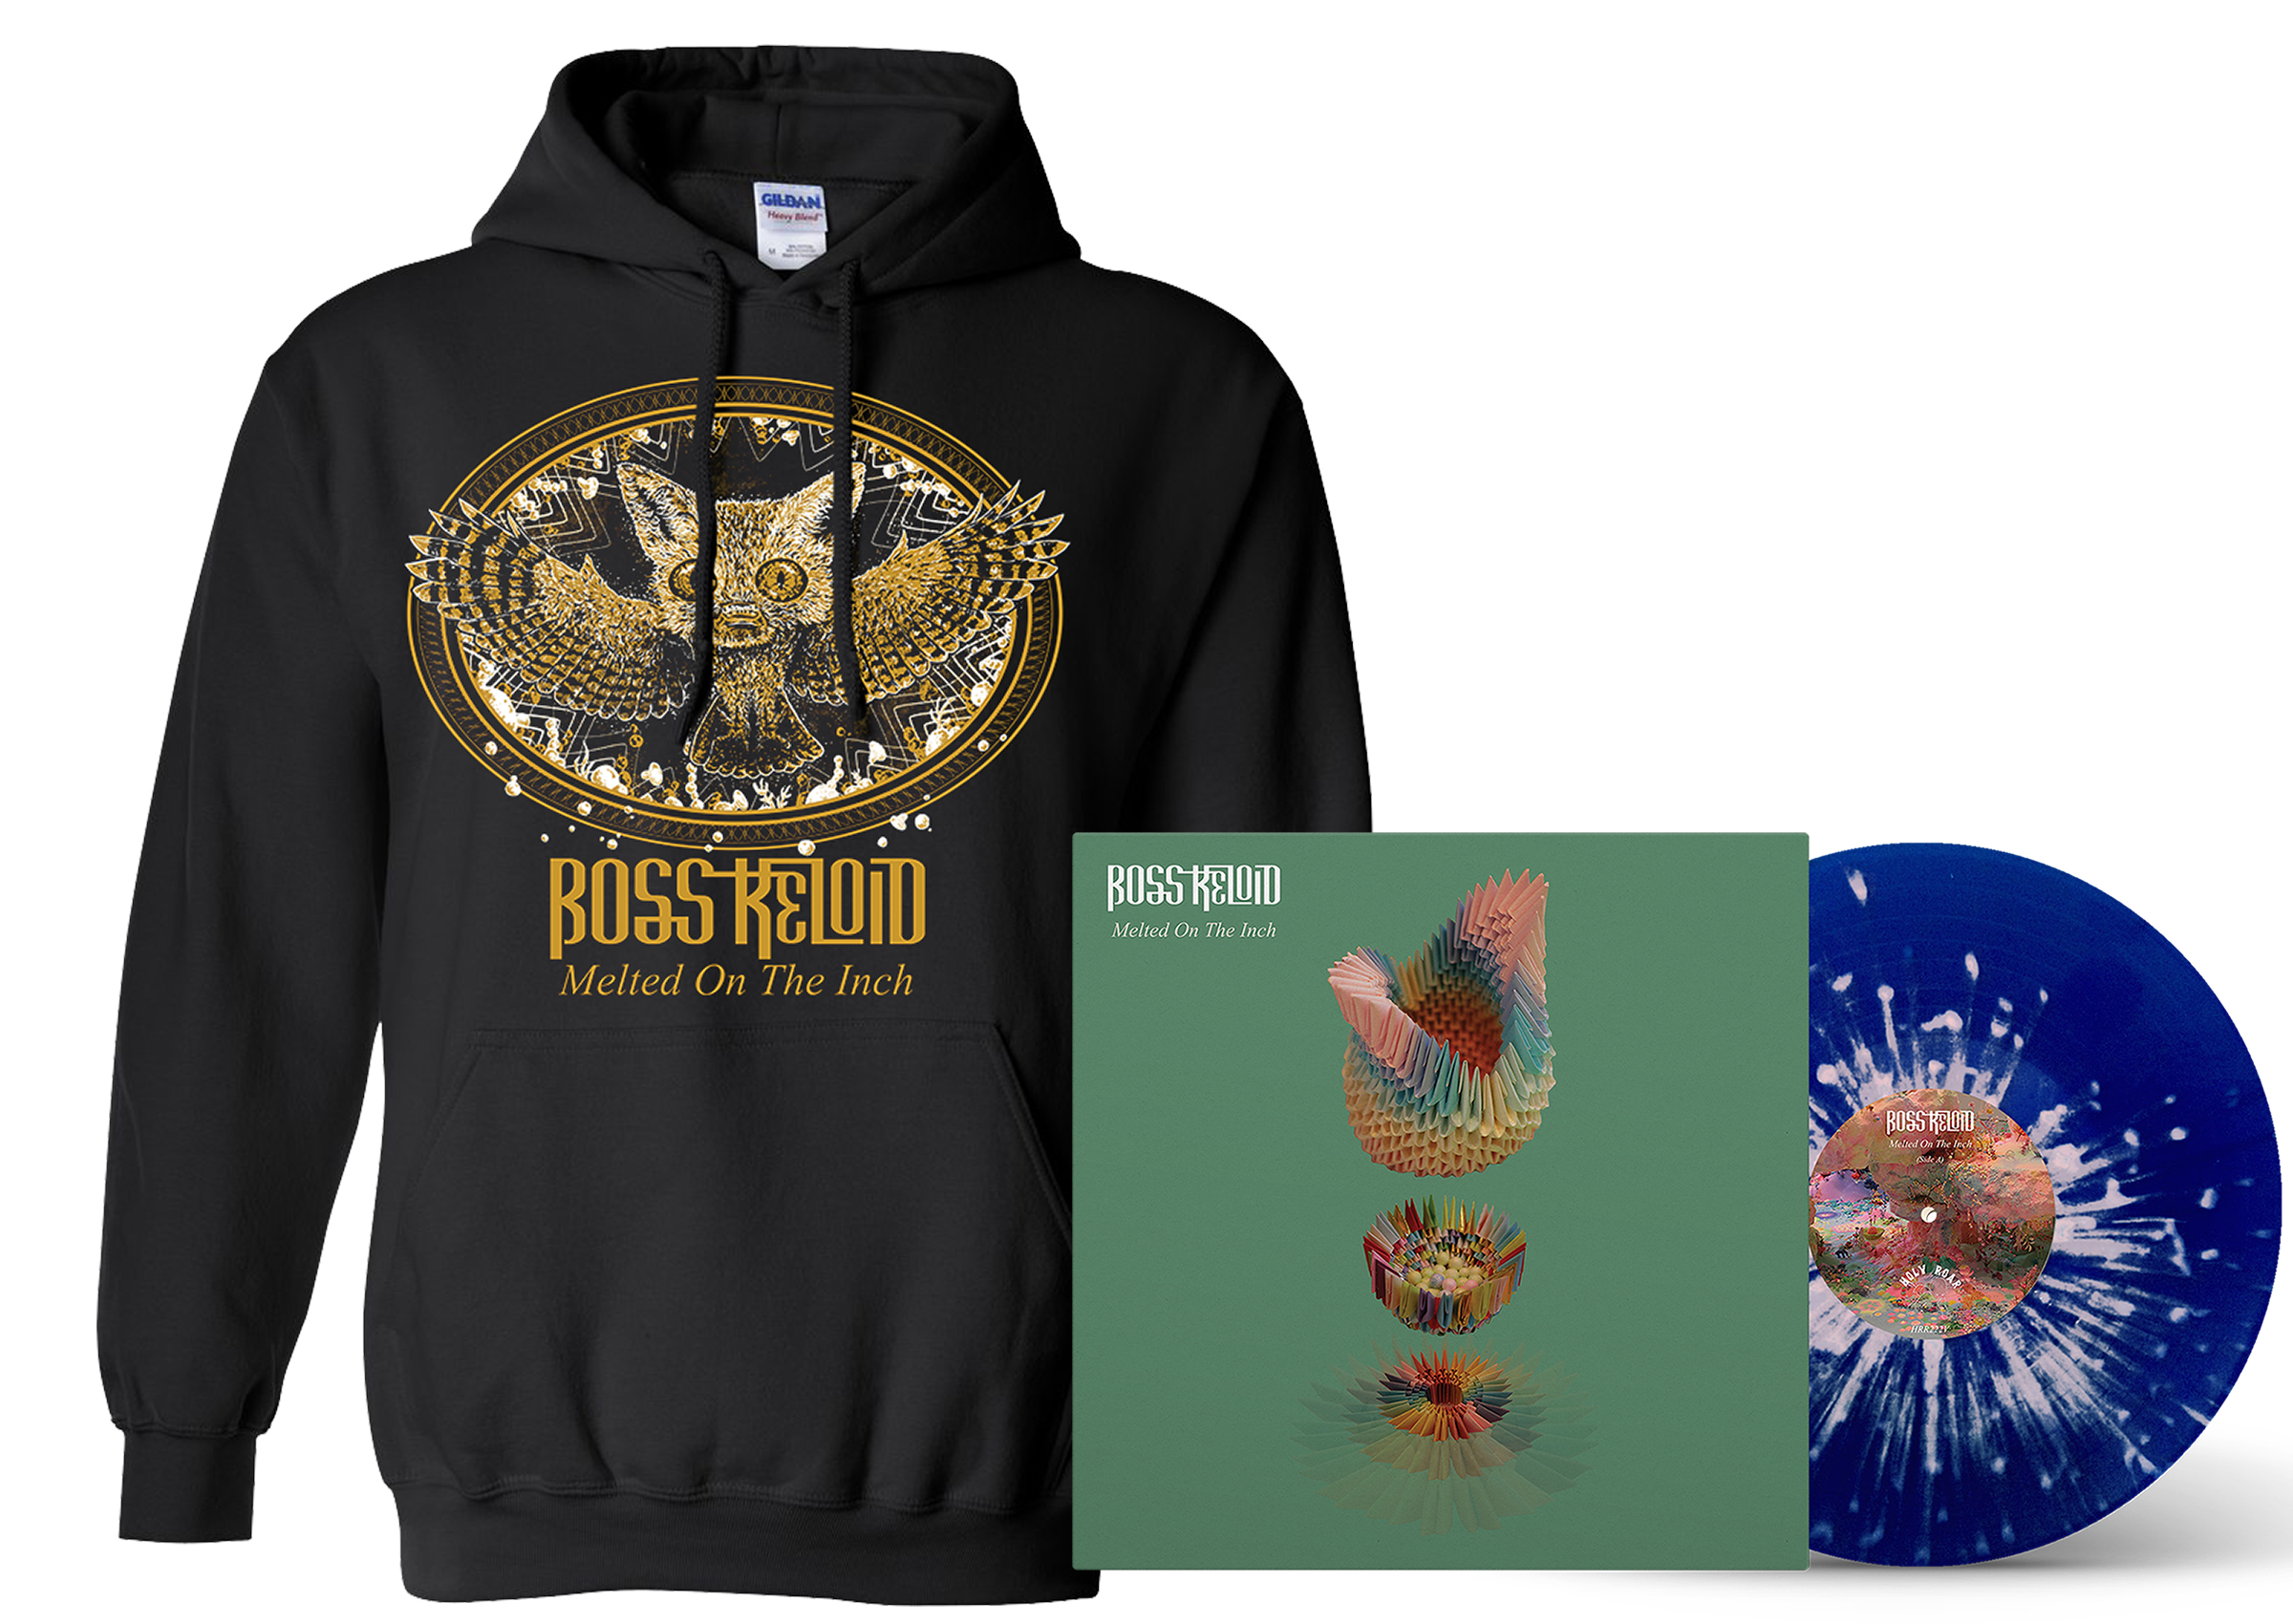 Boss Keloid - Melted On The Inch Foxowl hoodie + LP